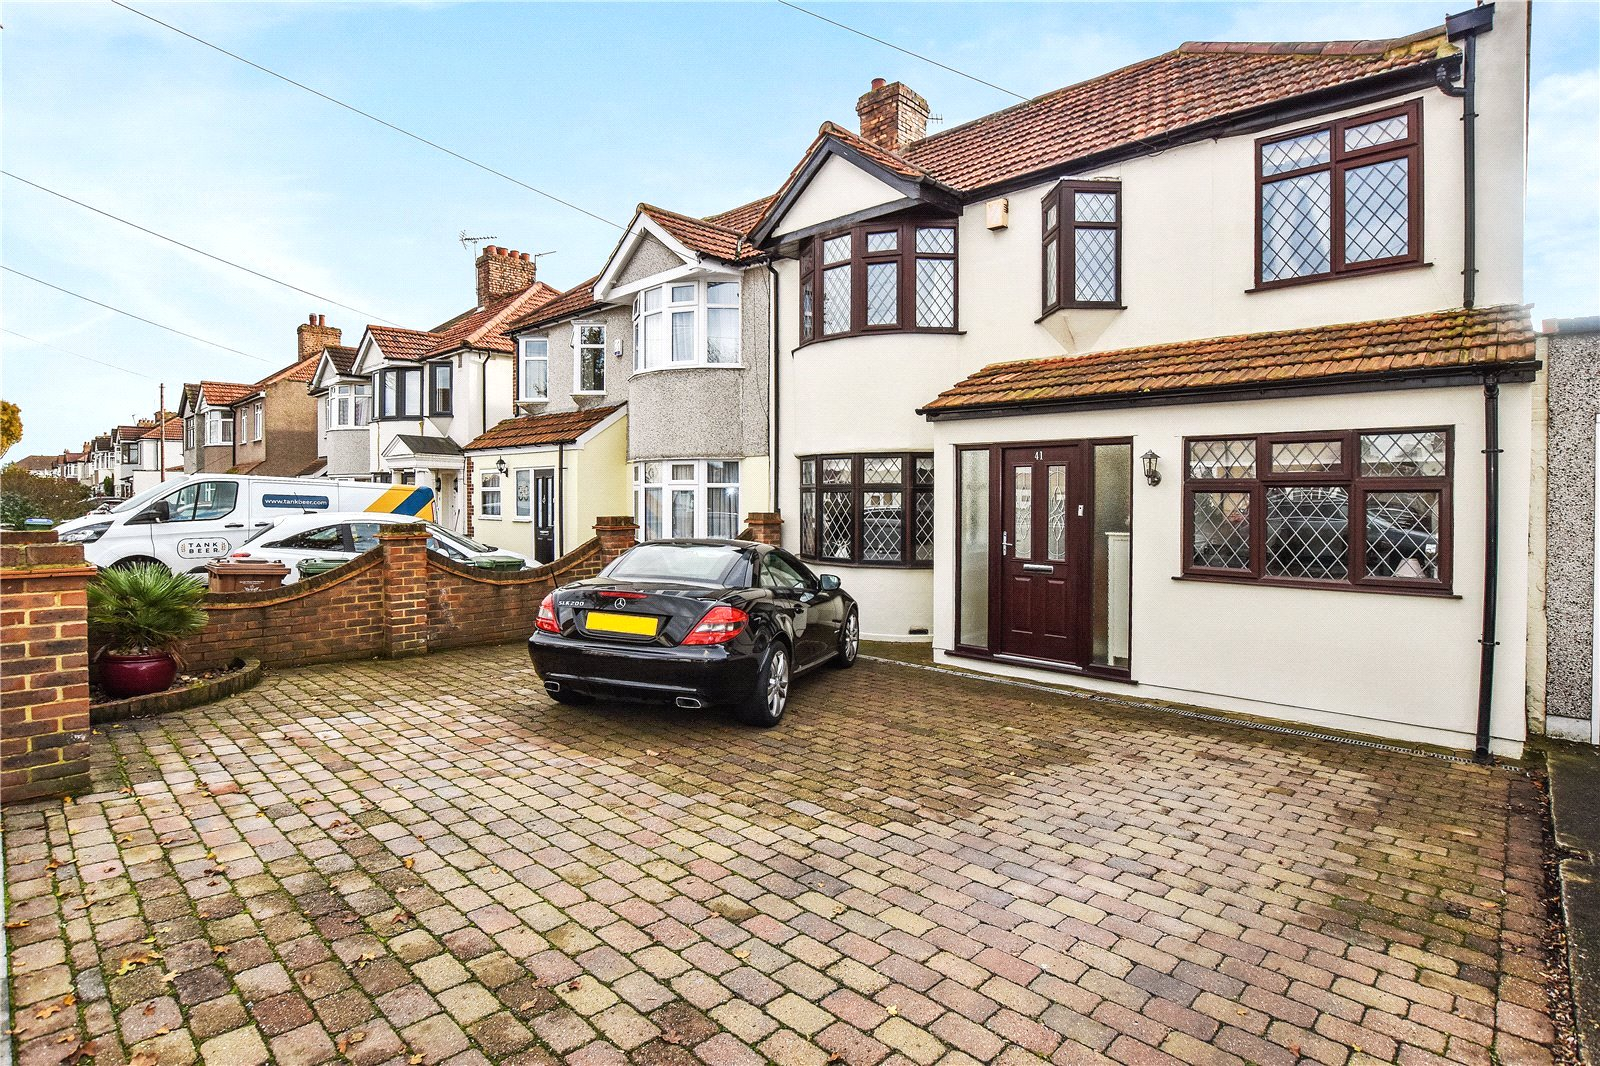 Normanhurst Avenue, Bexleyheath, Kent, DA7